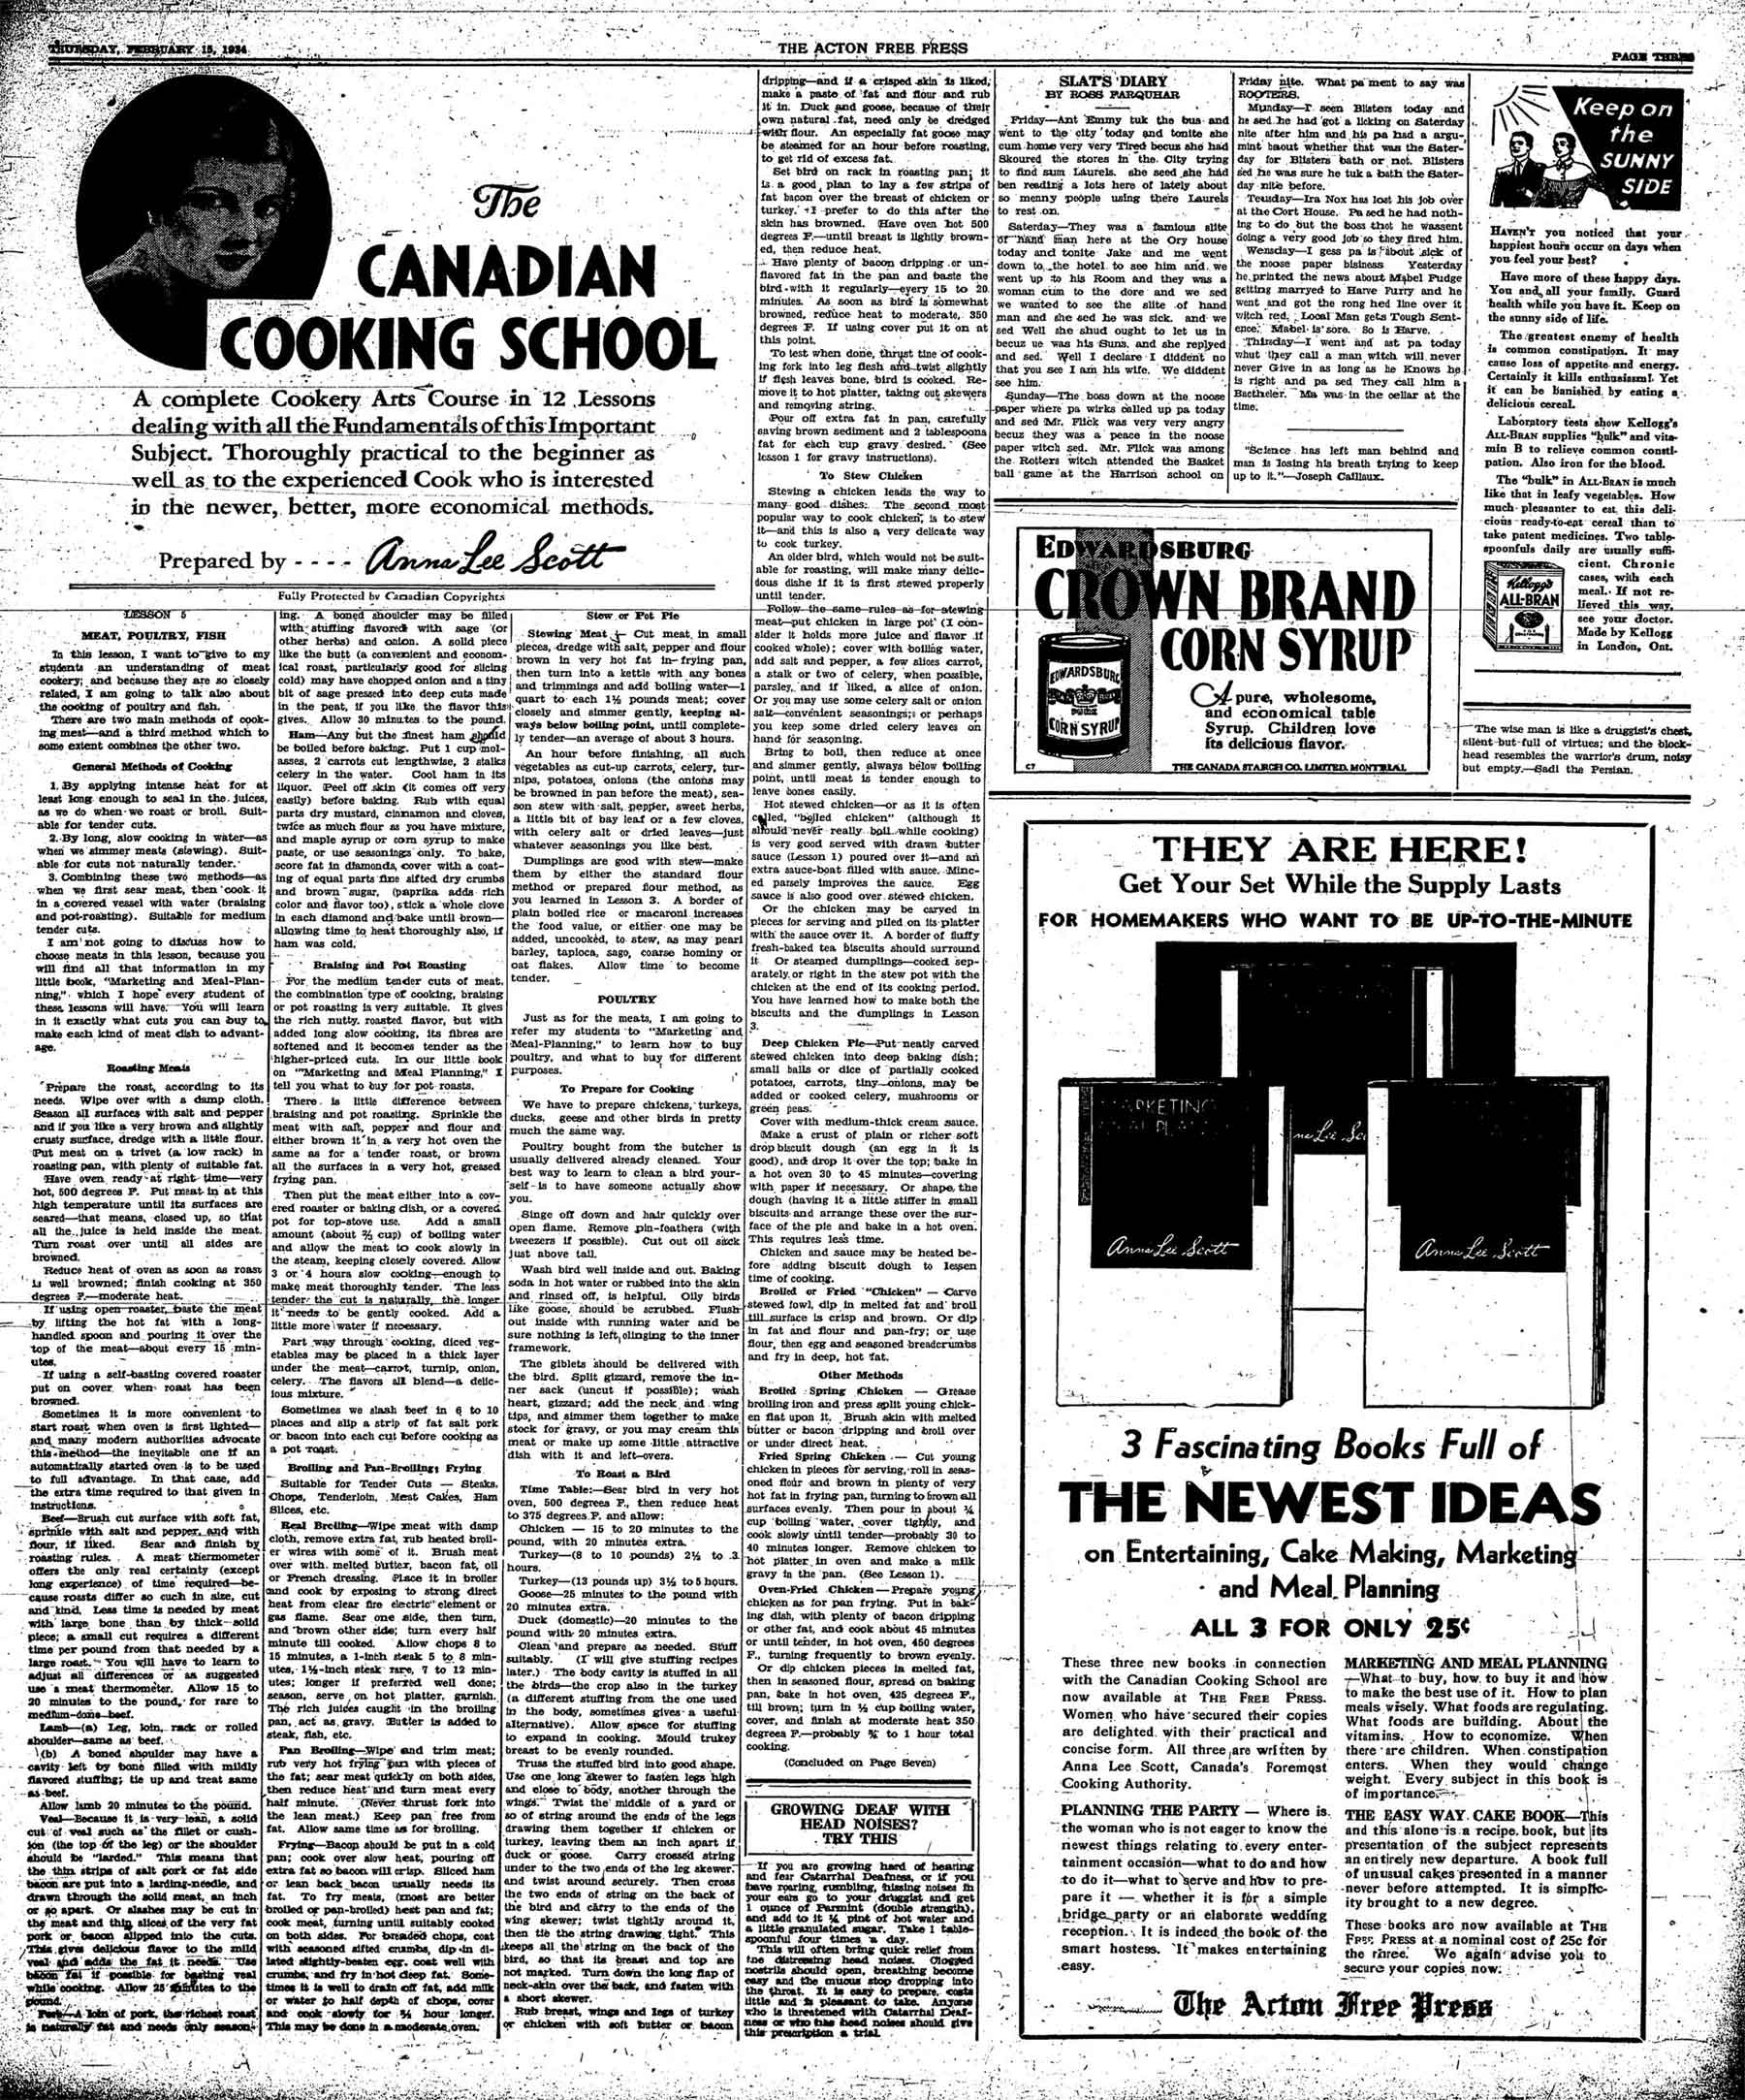 The Canadian Cooking School. Acton, Ontario: Acton Free Press. Thursday, 15 February 1934. Page 3, col. 1.